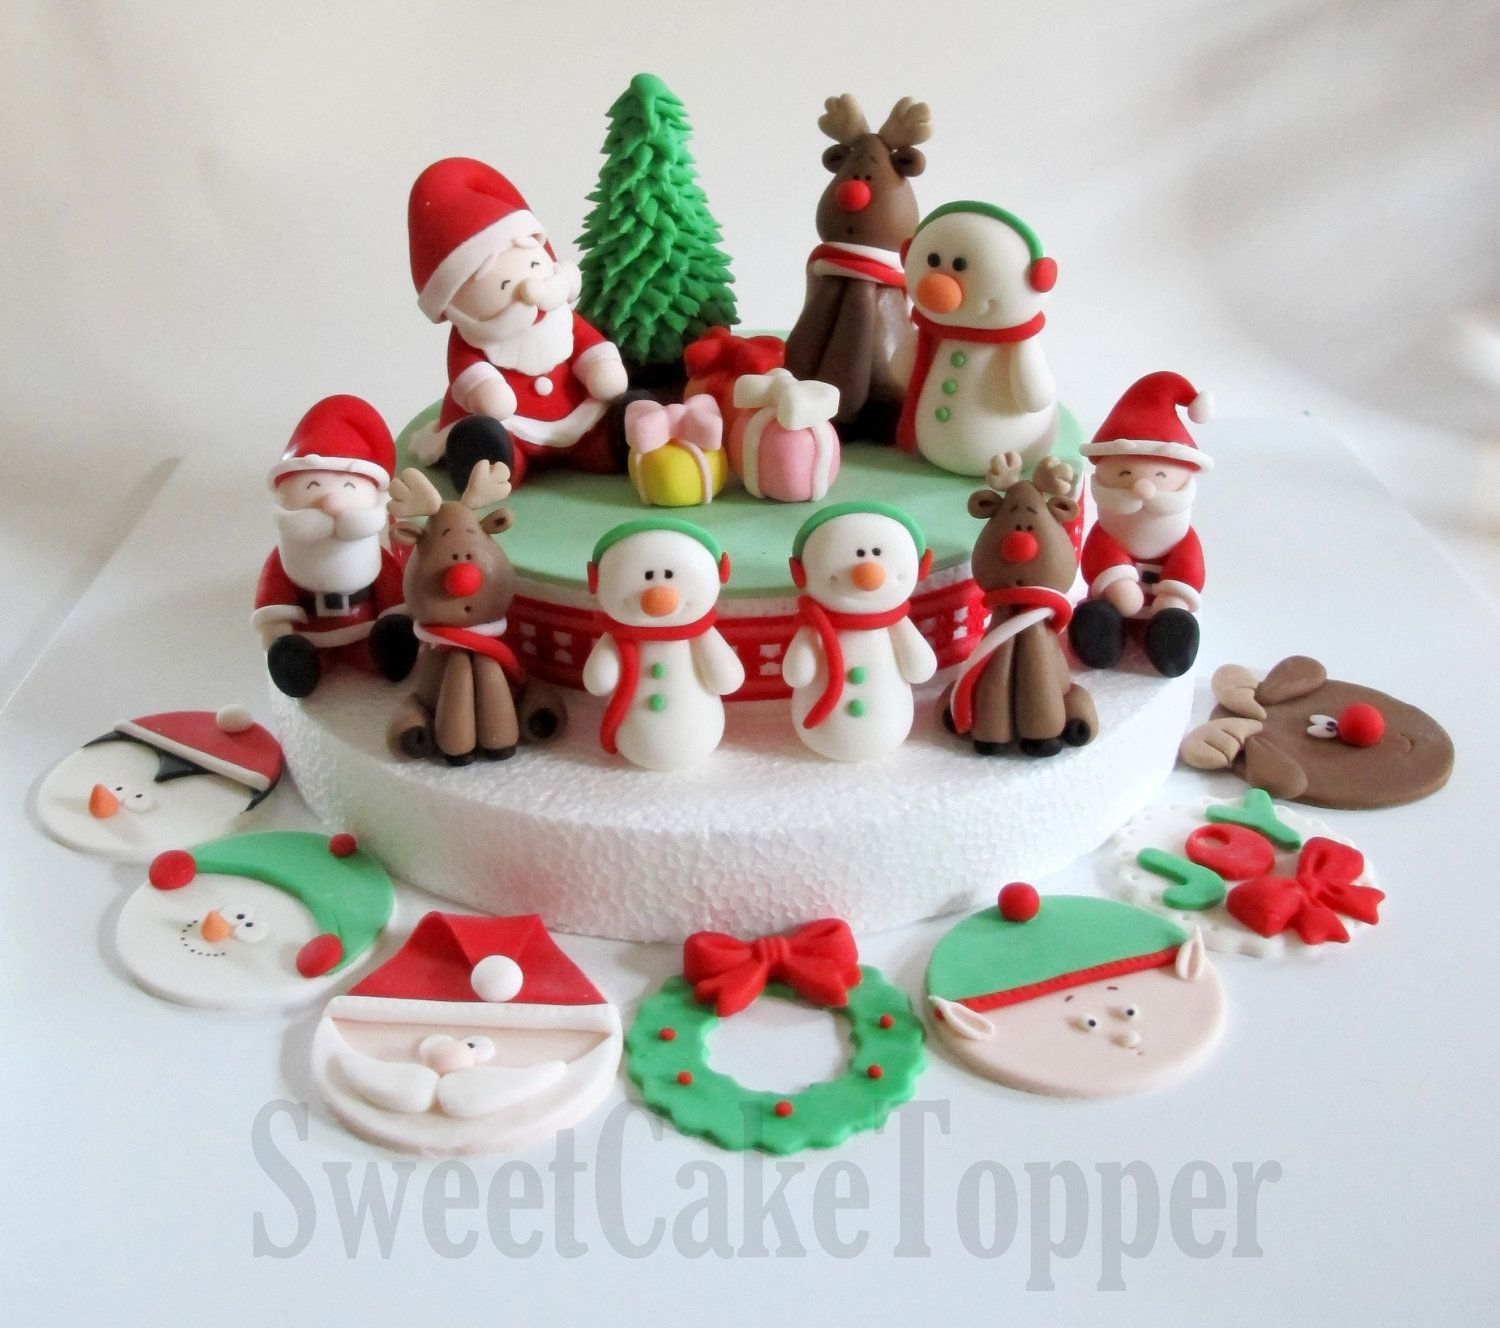 Etsy Christmas Cake Decorations : Christmas Fondant Cake Topper Set - Homemade Edible Cake ...